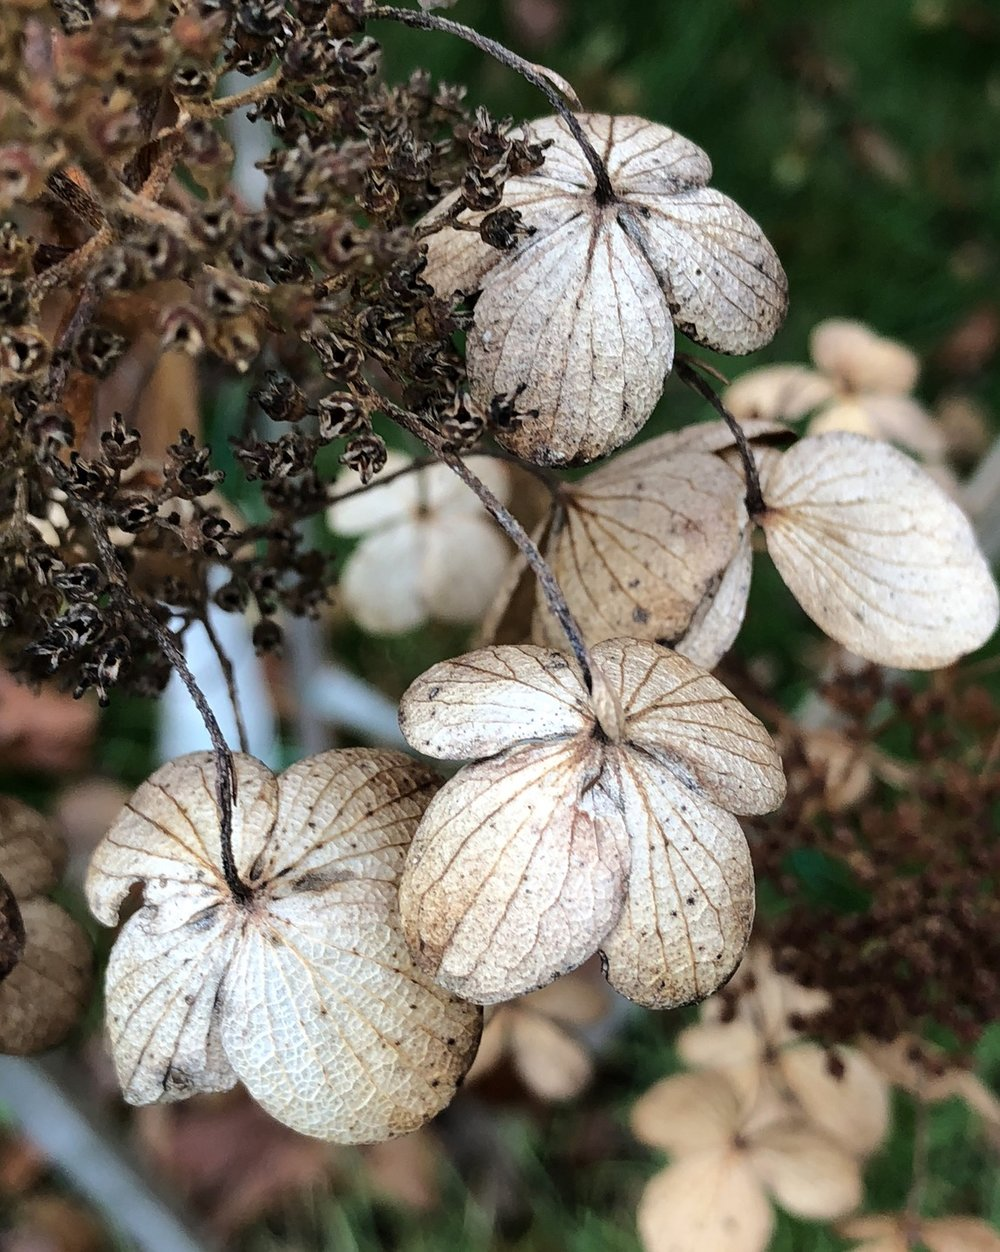 These are hydrangea flowers in the Fall. Having stood upright since blooming, in the Fall they face downwards, offering an opportunity capture their brittle stems and beautifully patterned undersides. It makes such a statement about the beauty of Fall colors, too. ©2017 Sean Walmsley;